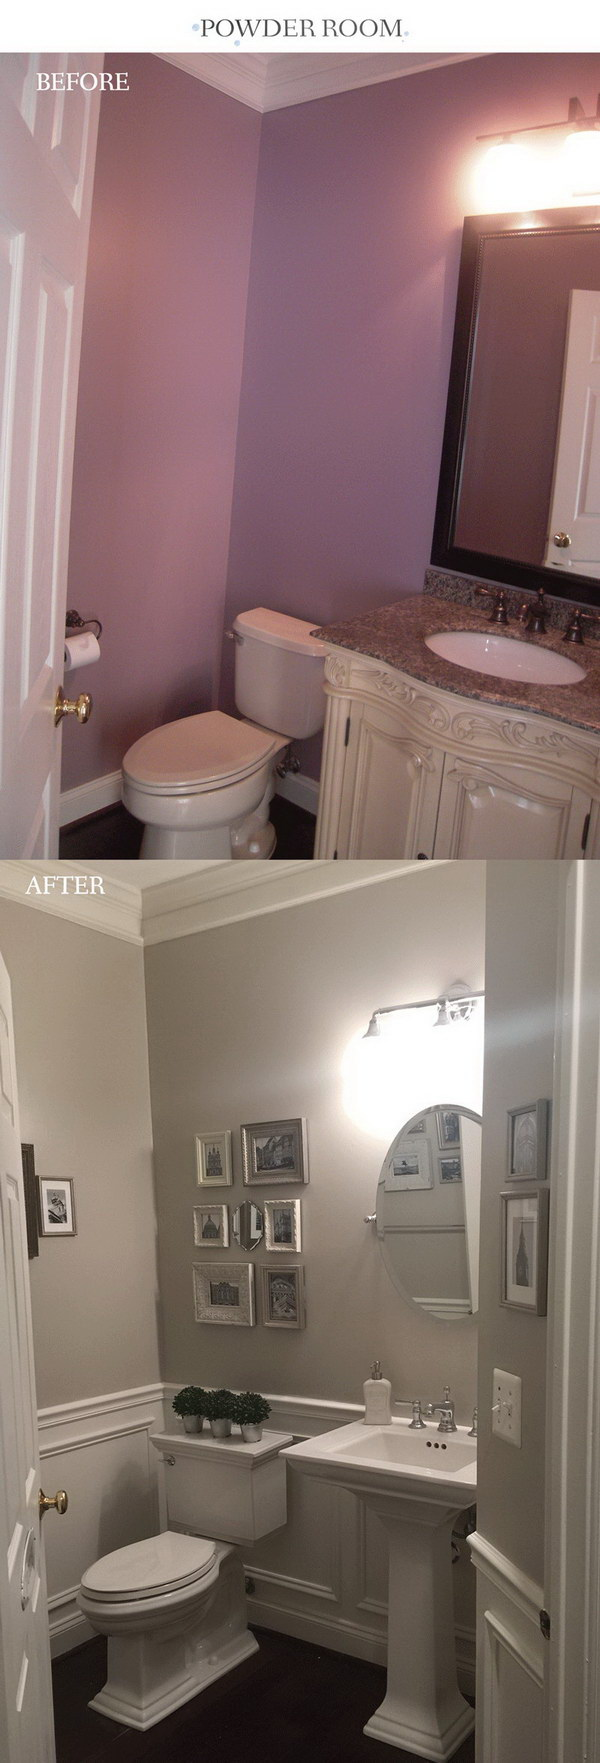 Before and After Wainscoting and Makeover.